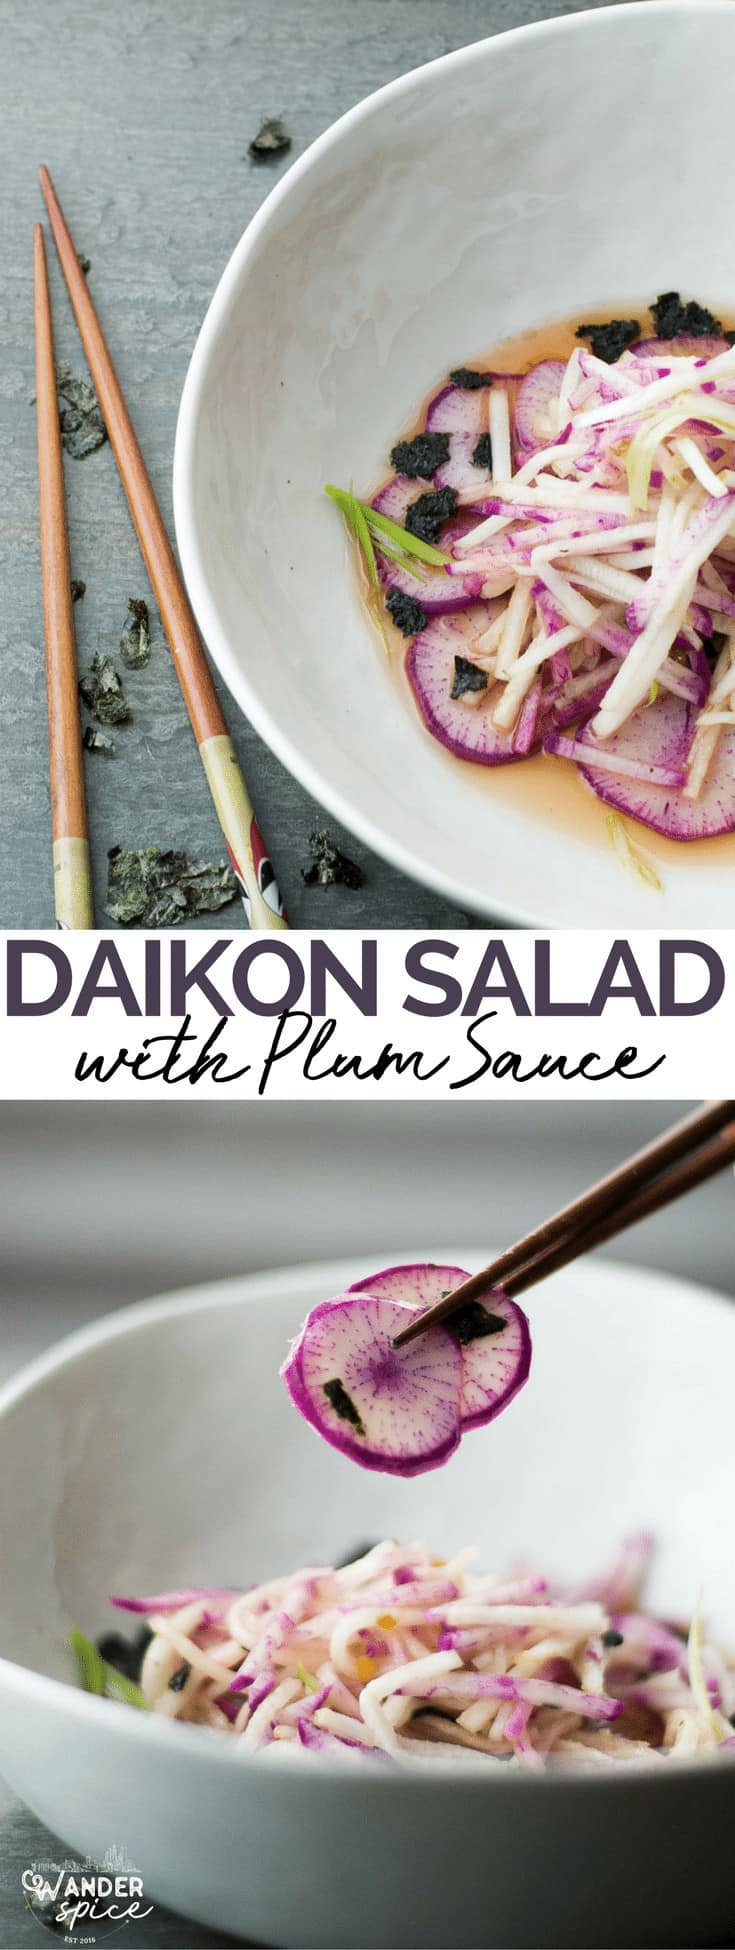 Daikon Salad Pin